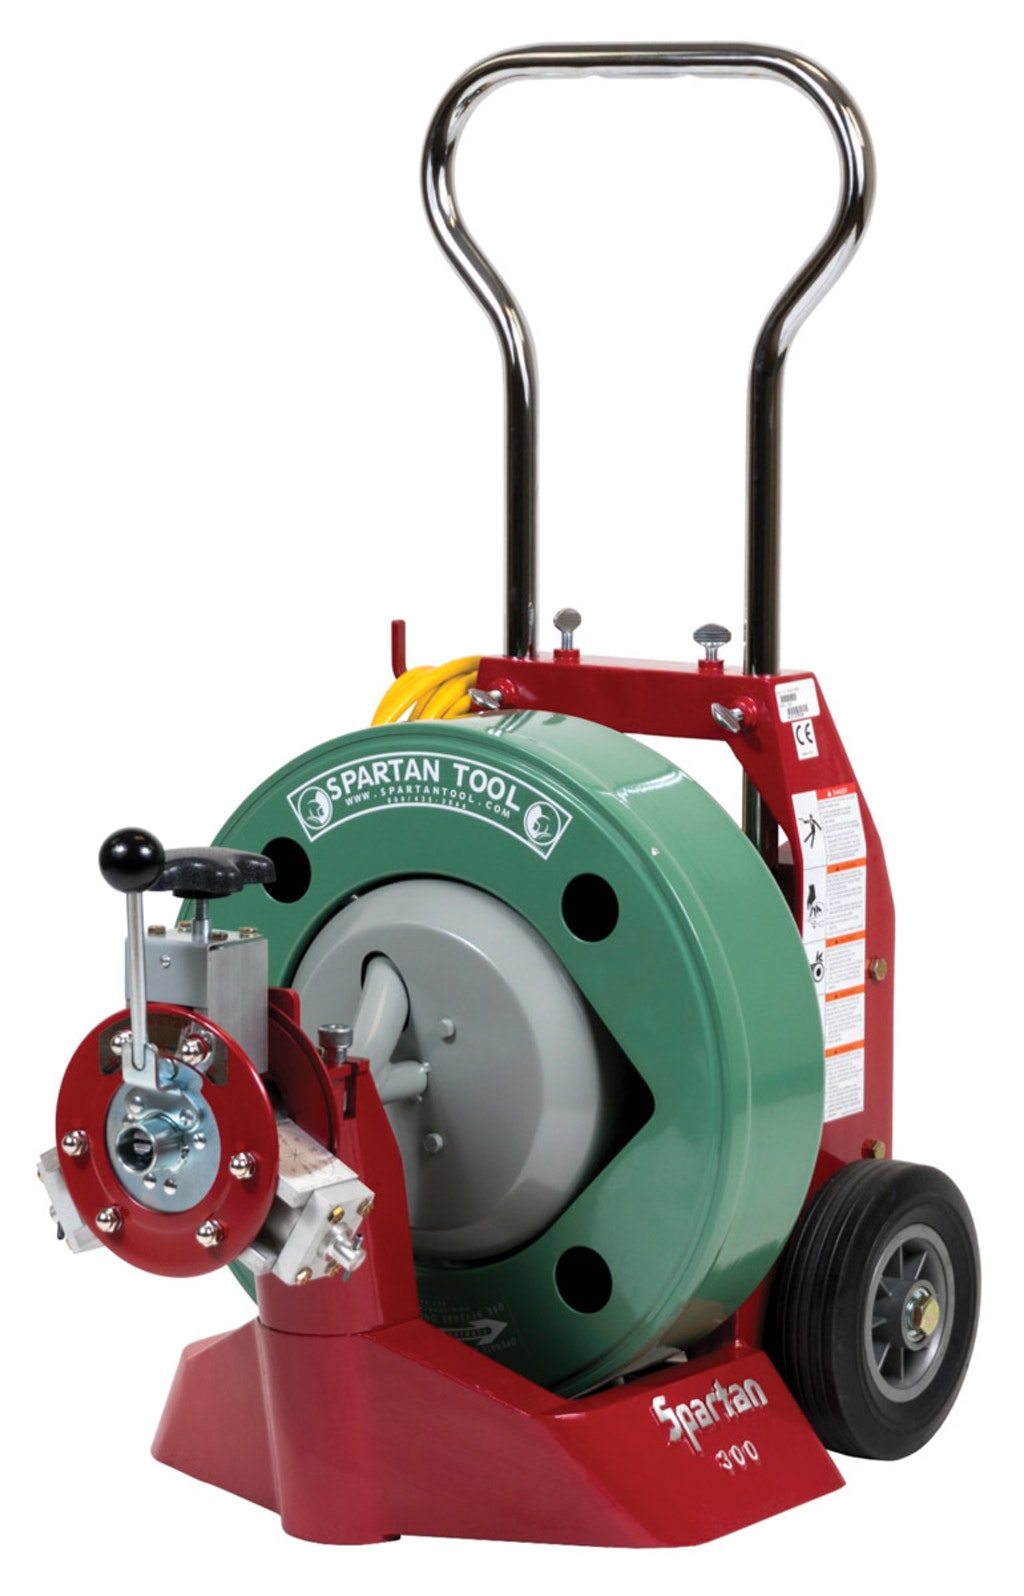 Cable Machines - Spartan Tool Model 300   Cleaner   Spartan 300 Sewer Machine Wire Diagram      Cleaner: Magazine